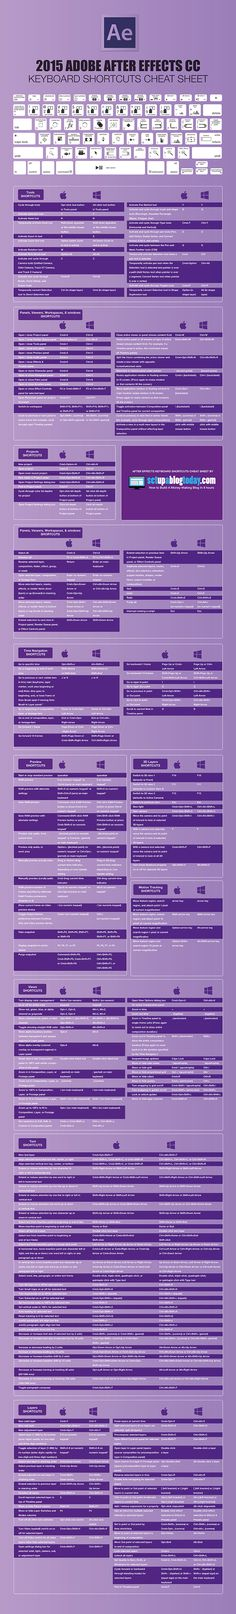 2015-adobe-after-effects-keyboard-shortcuts-cheat-sheet.jpg (800×5474)